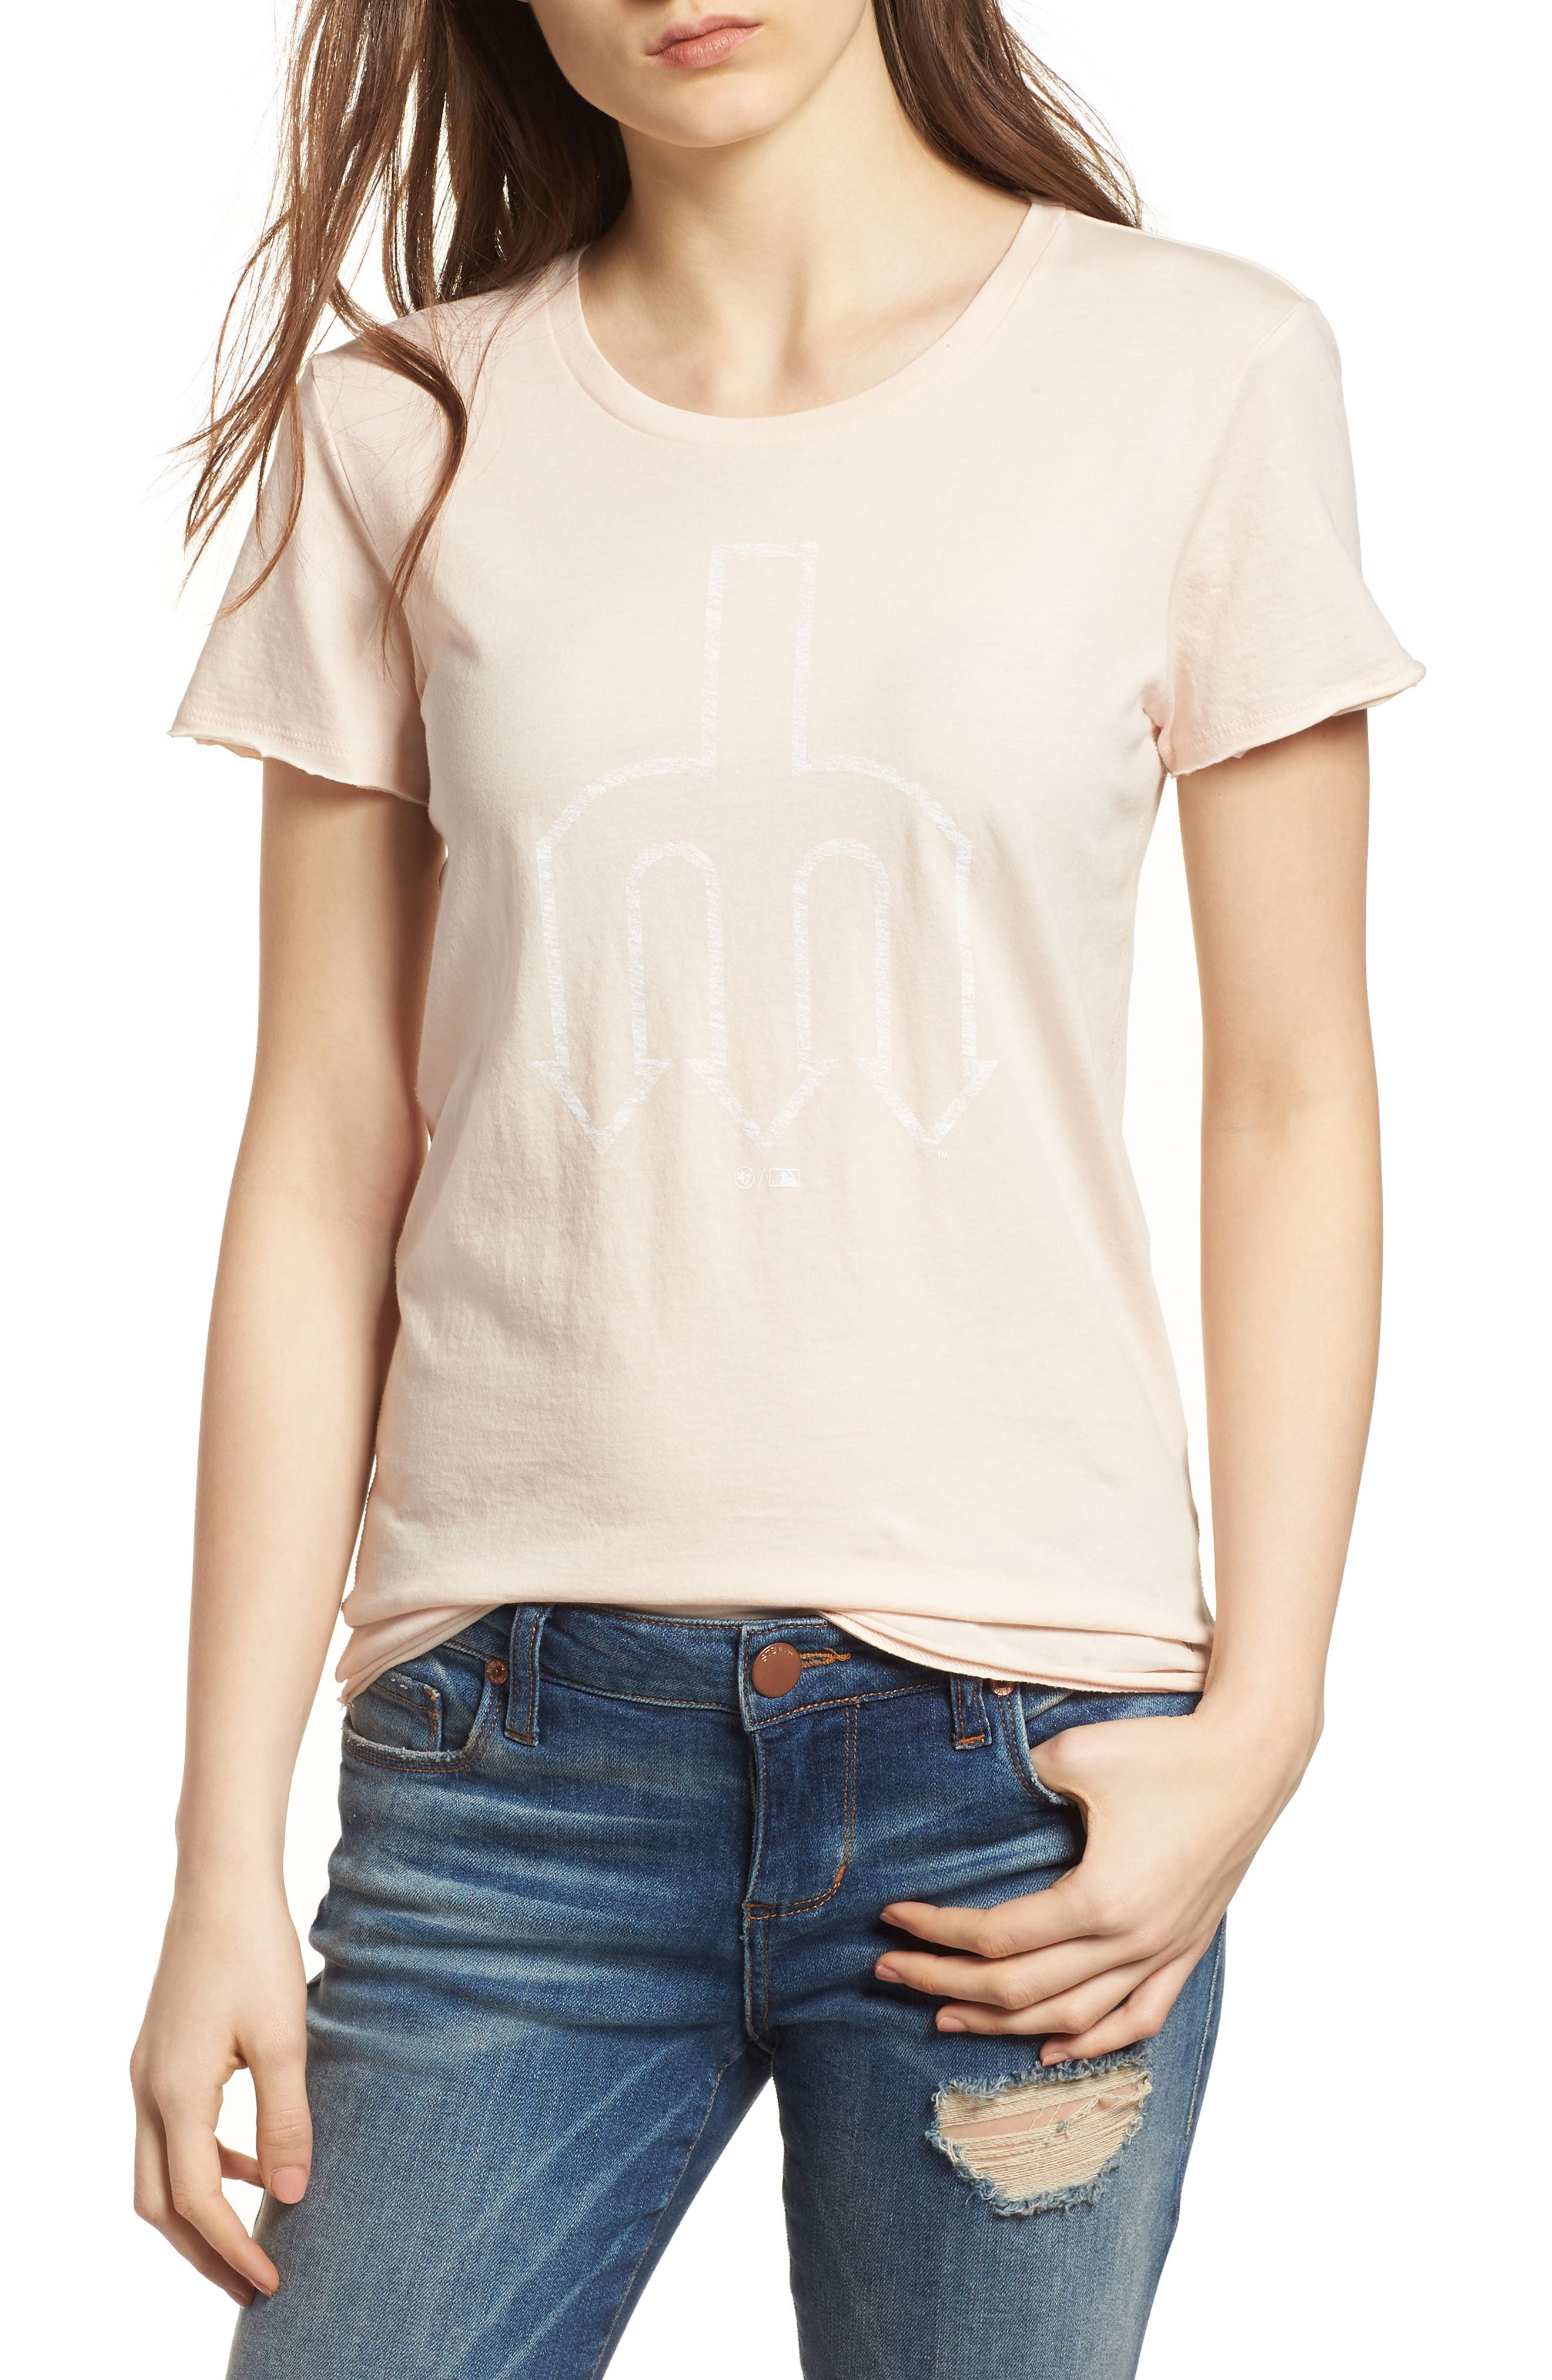 Seattle Mariners Fader Letter Tee,                         Main,                         color, Blush